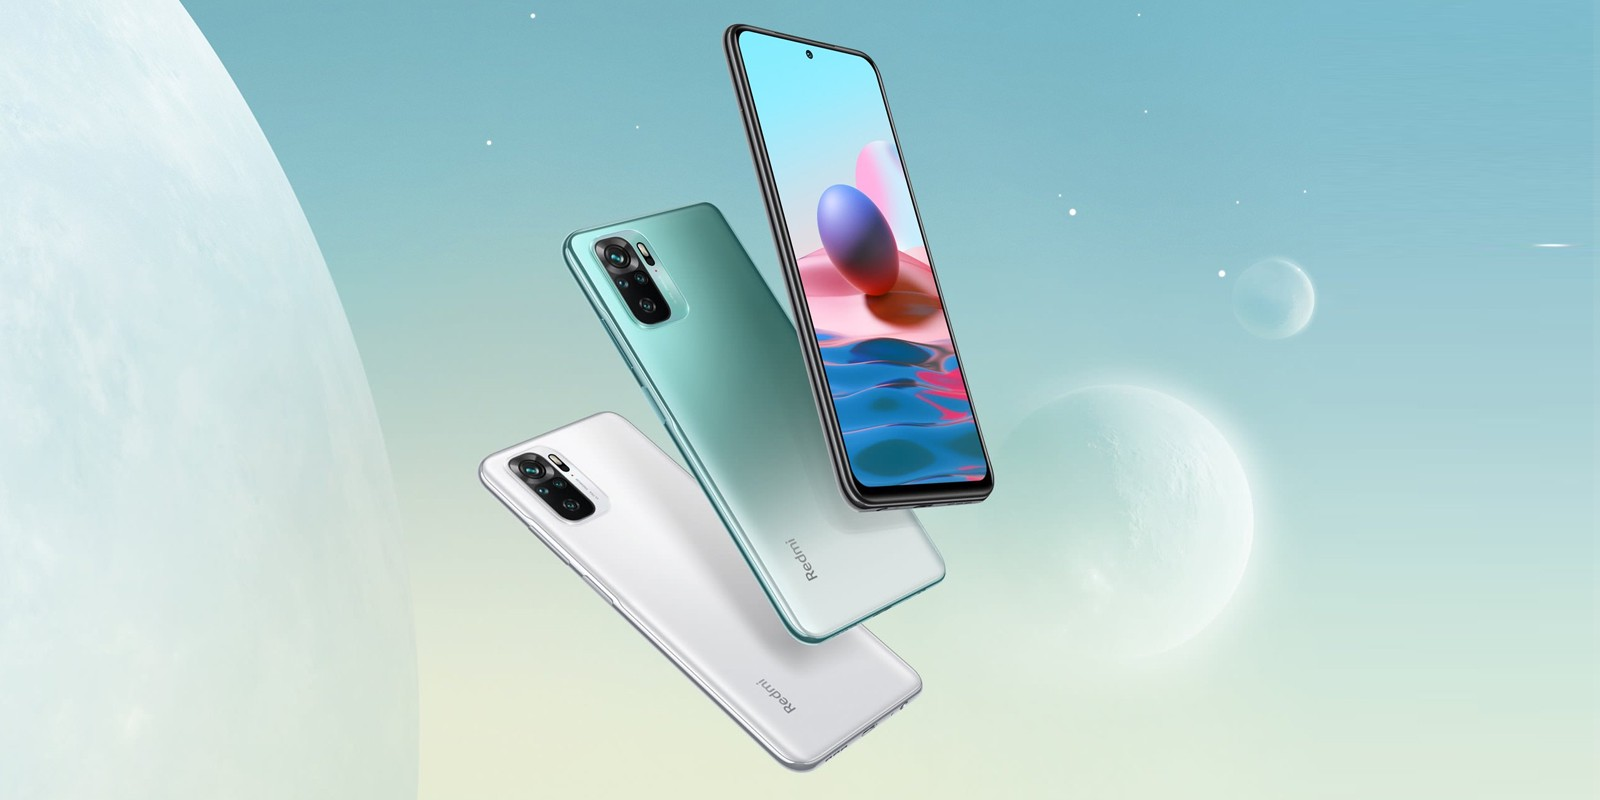 The New Fuss About Redmi Note 10 Pro